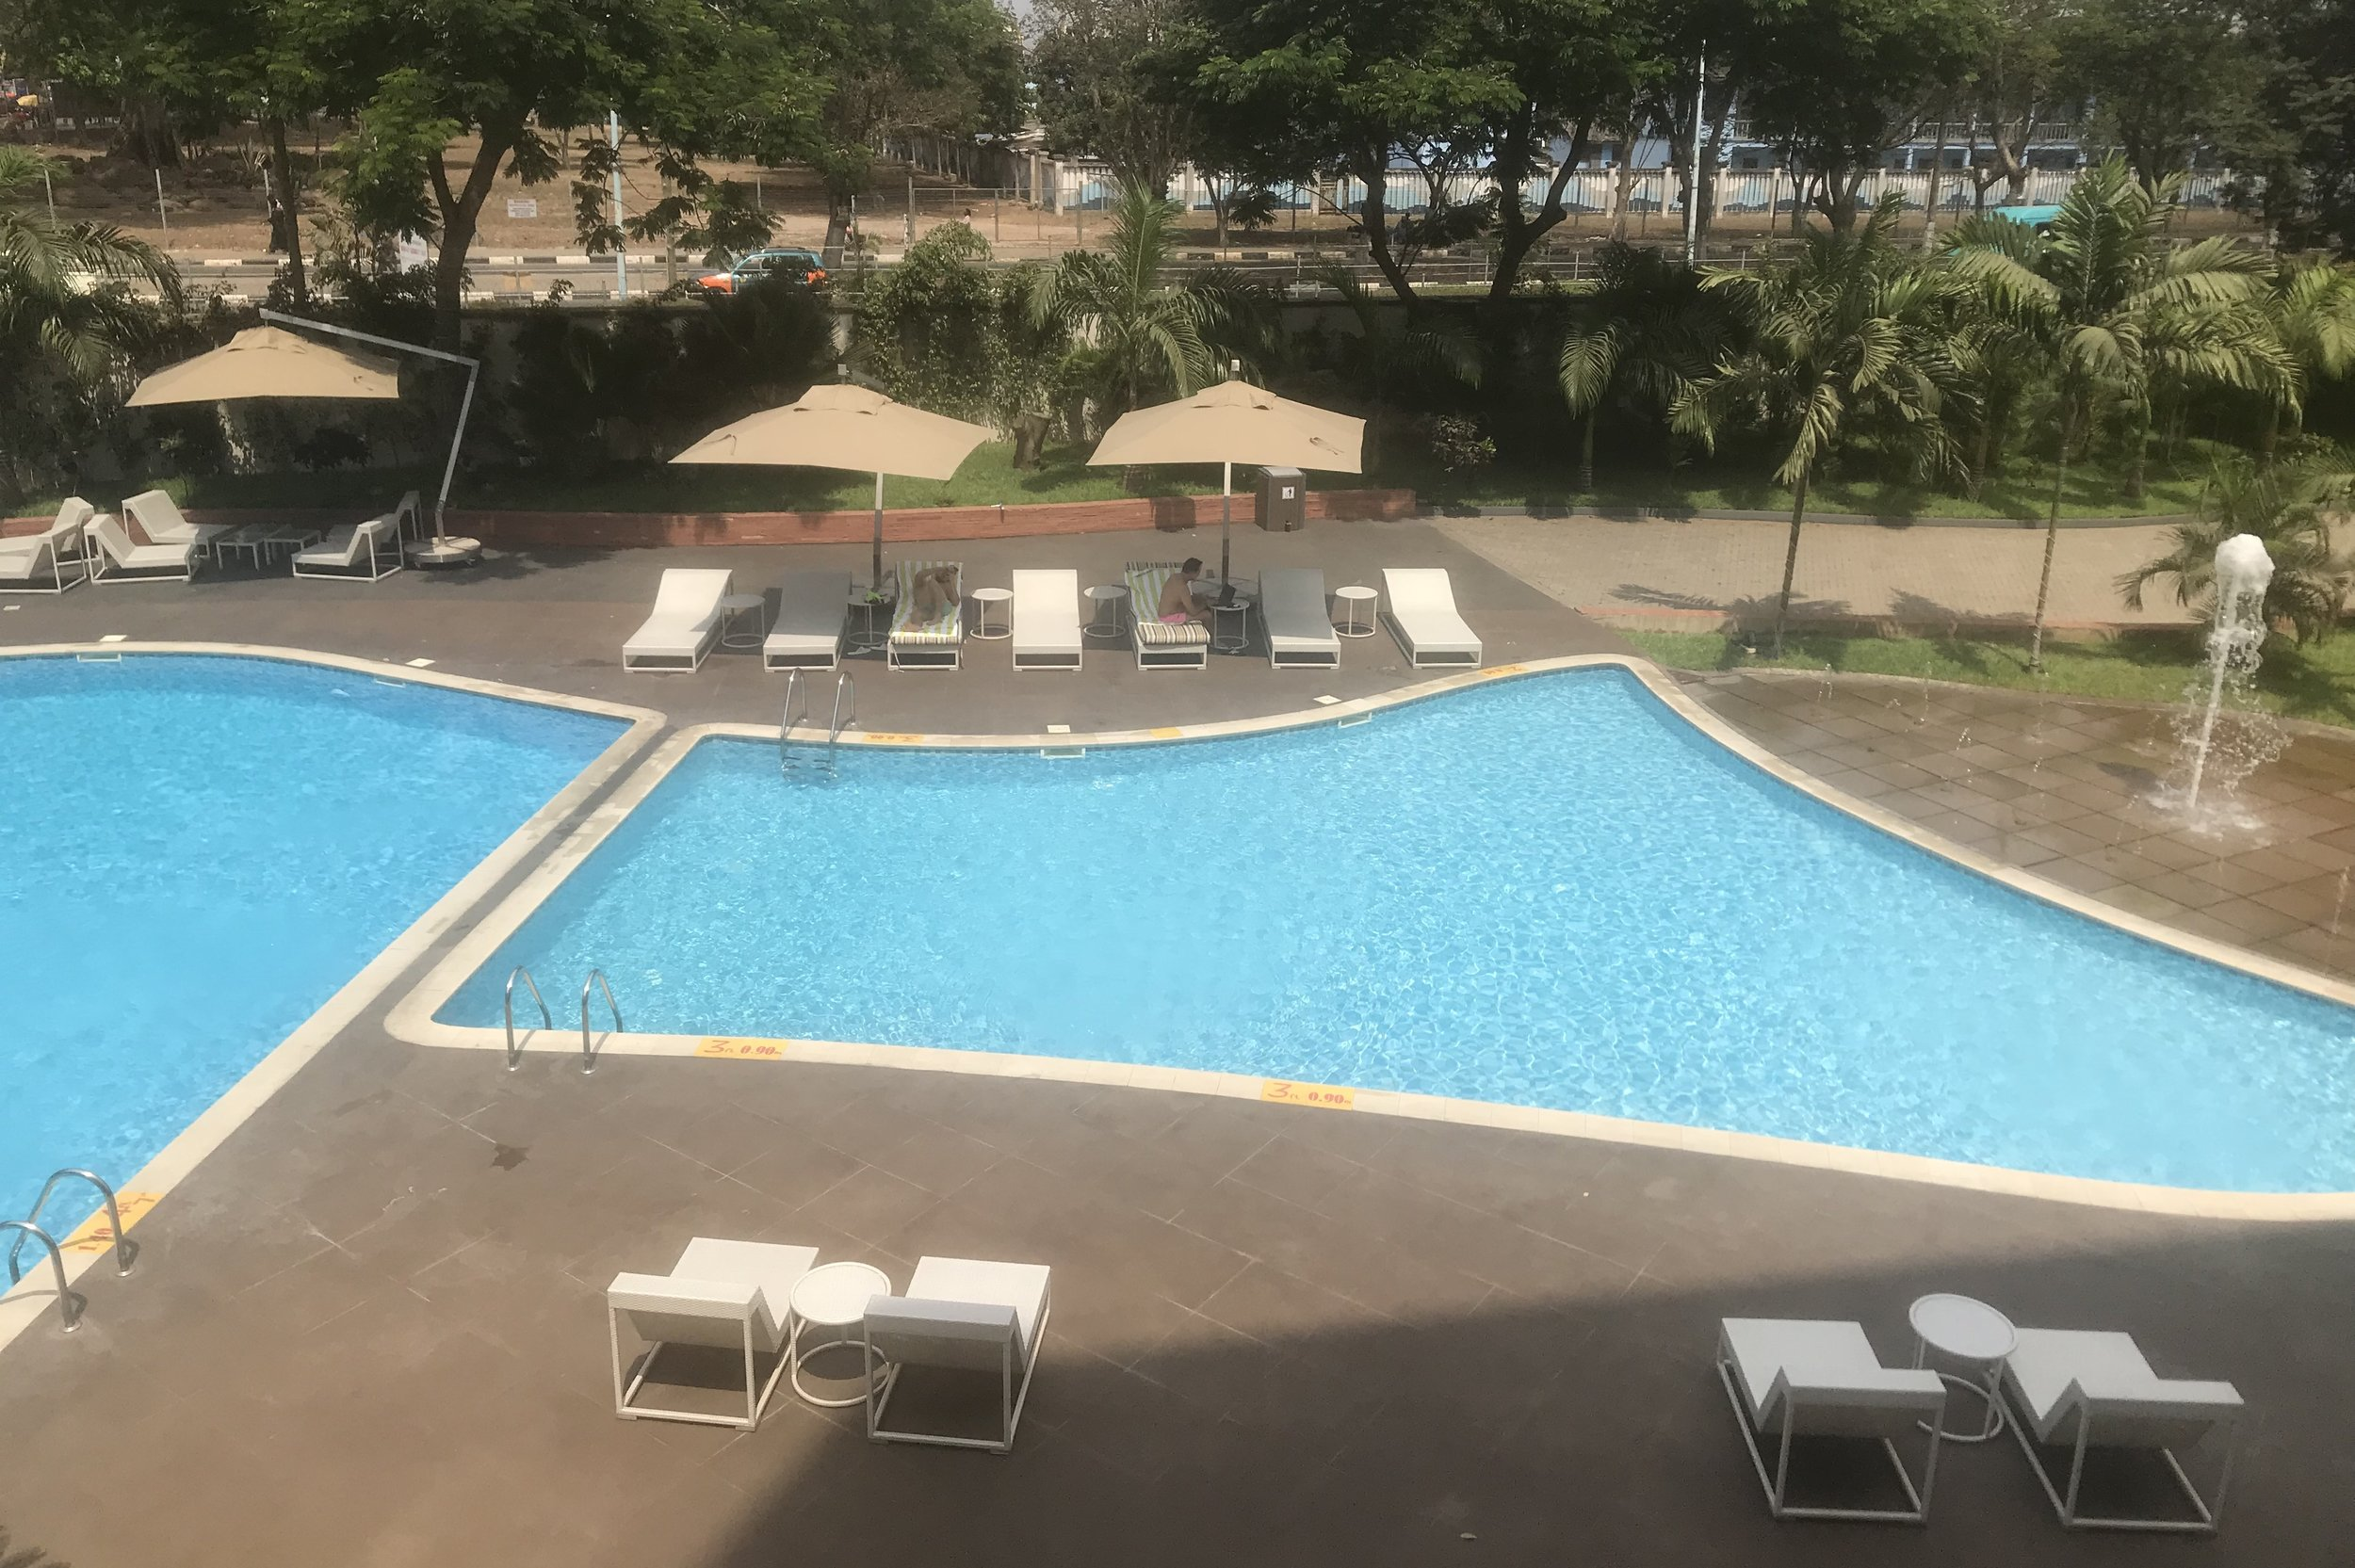 Marriott Accra – Executive Lounge view of pool area